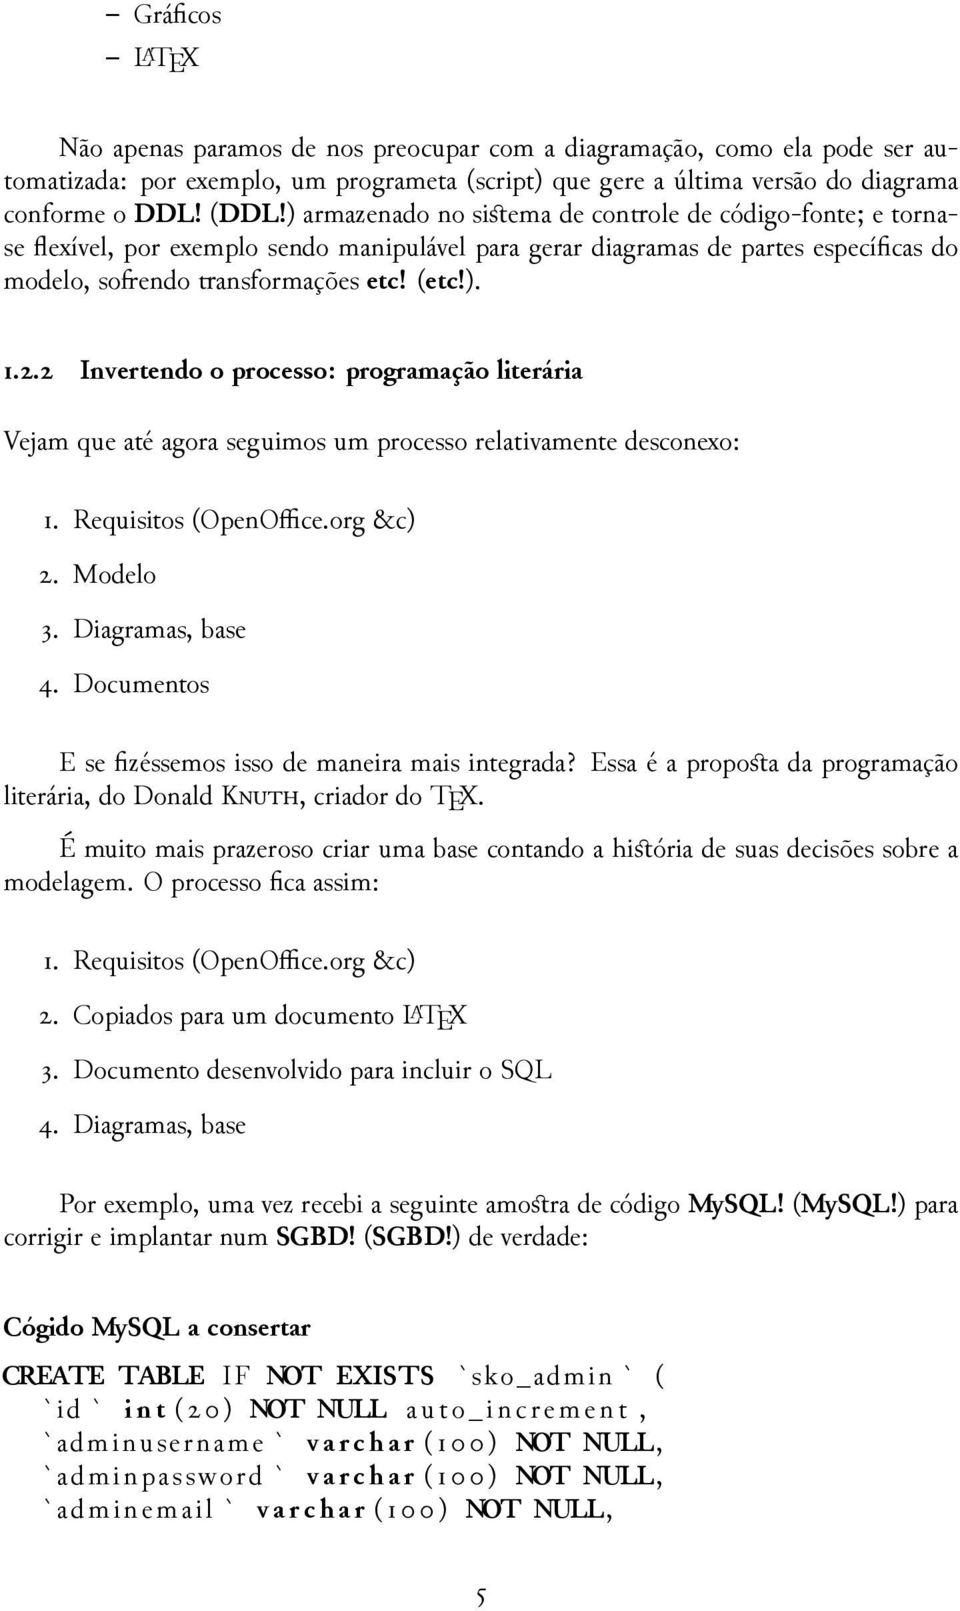 Requisitos (OpenOffice.org &c). Modelo. Diagramas, base. Documentos E se fizéssemos isso de maneira mais integrada? Essa é a proposta da programação literária, do Donald K, criador do TEX.